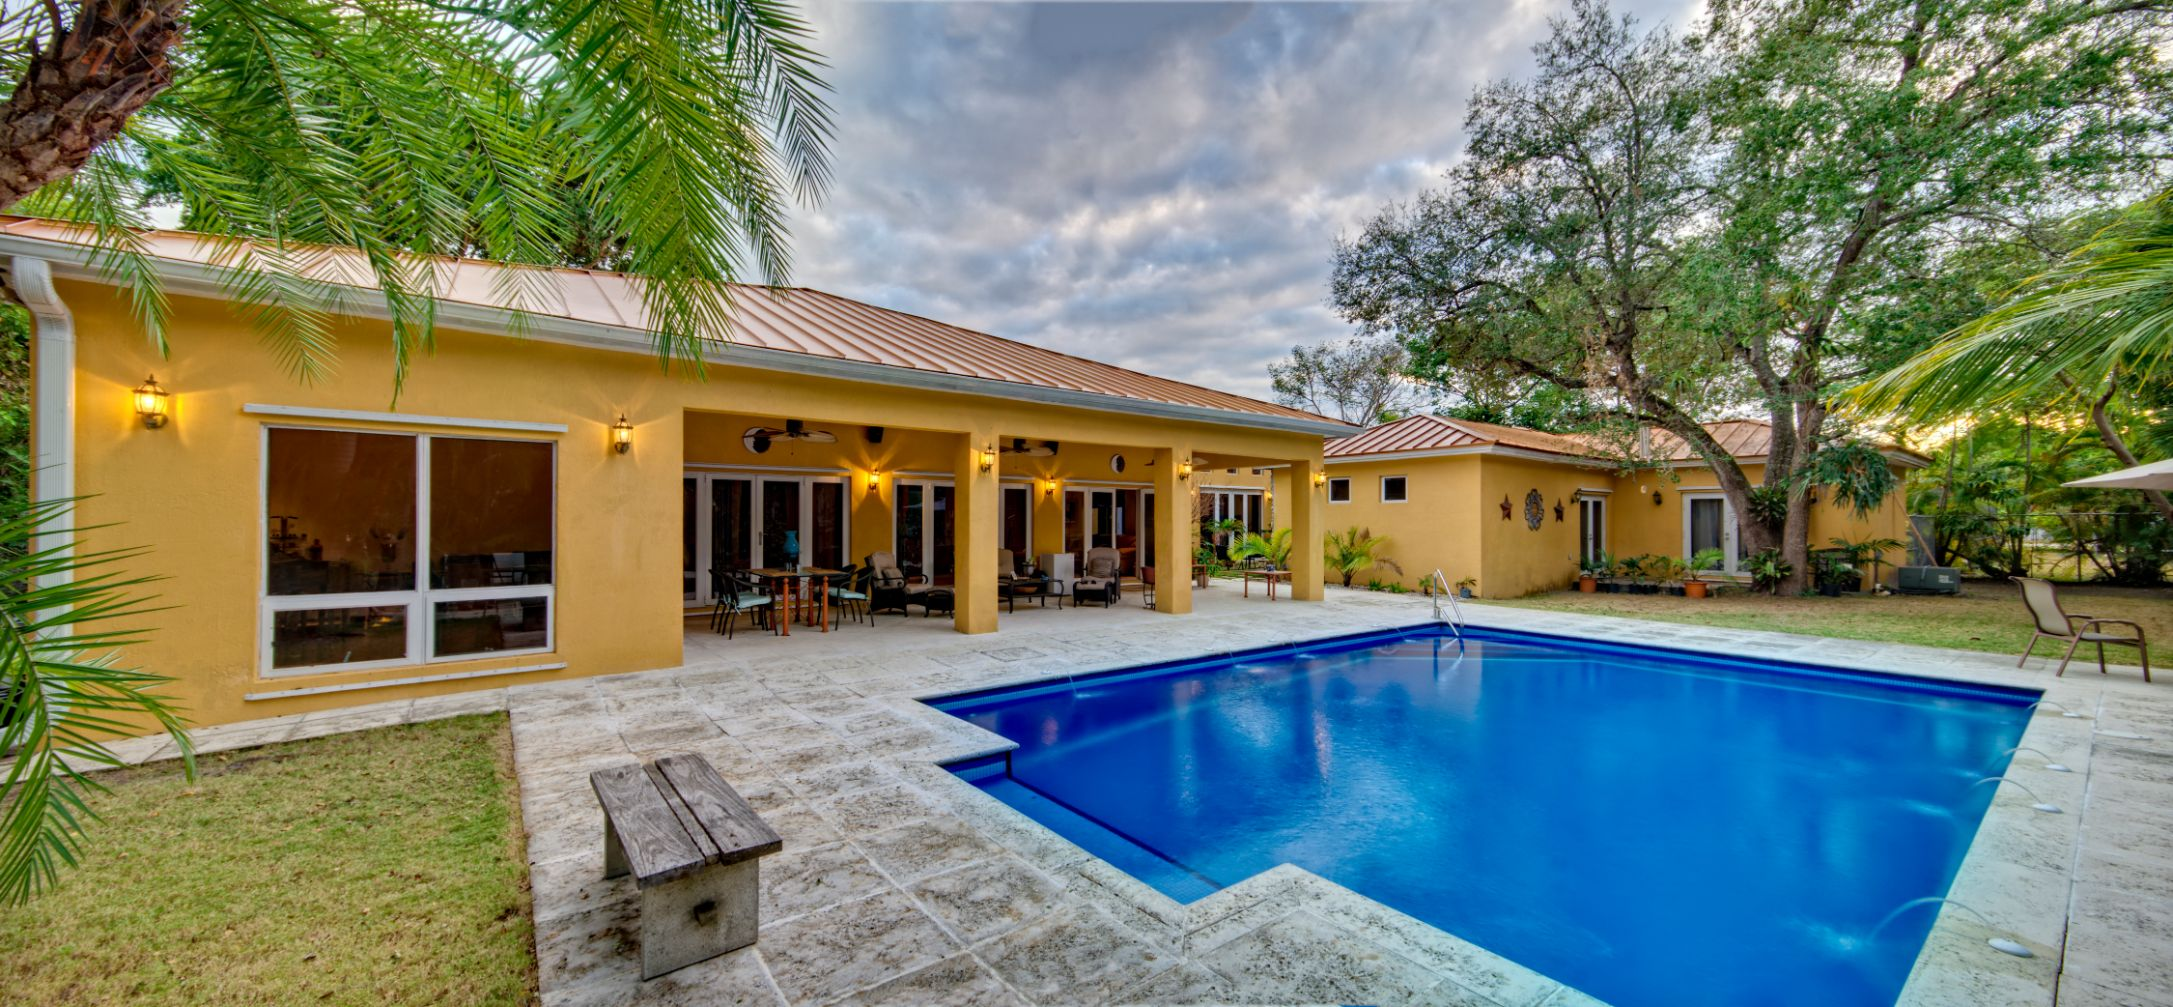 Pool Paver Installation in Miramar, FL